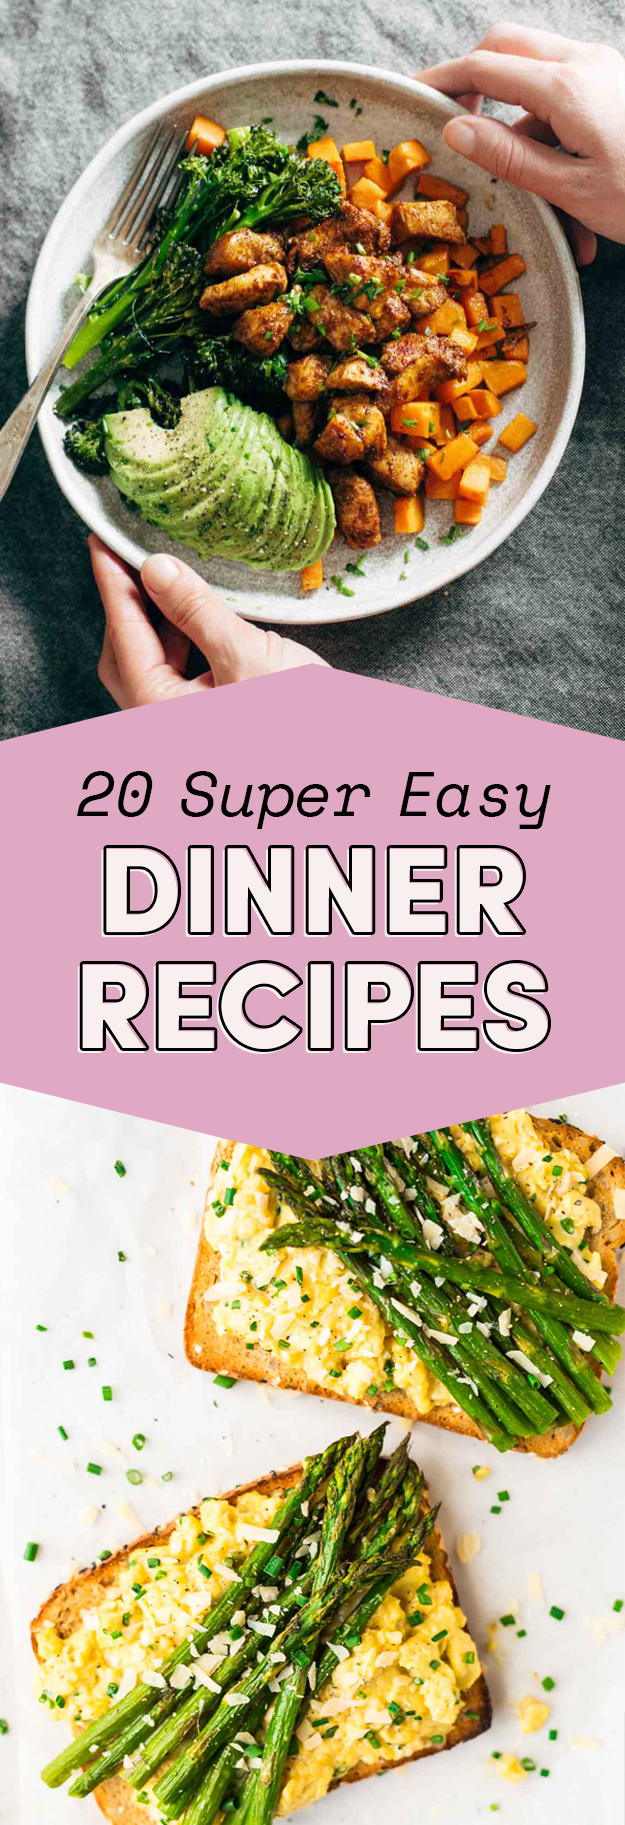 20 Easy Dinner Ideas For When You\u0027re Not Sure What To Make